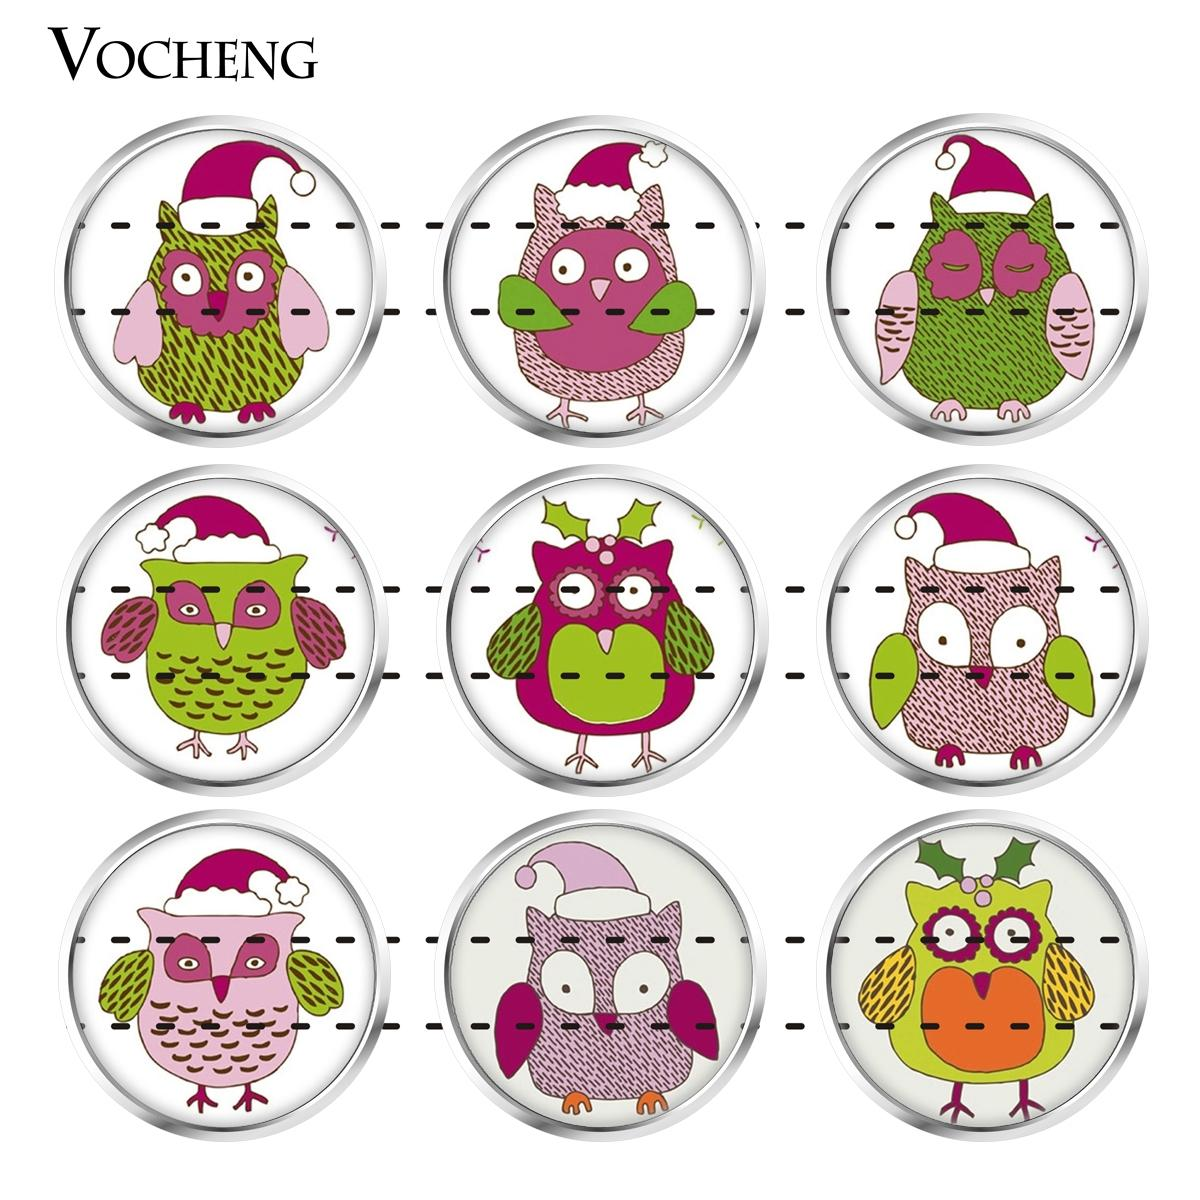 NOOSA Ginger Snap Jewelry Glass Snap Charms Button Lovely Owl Series 18mm Mixed 20pcs/lot Wholesale VOCHENG Vn-1818